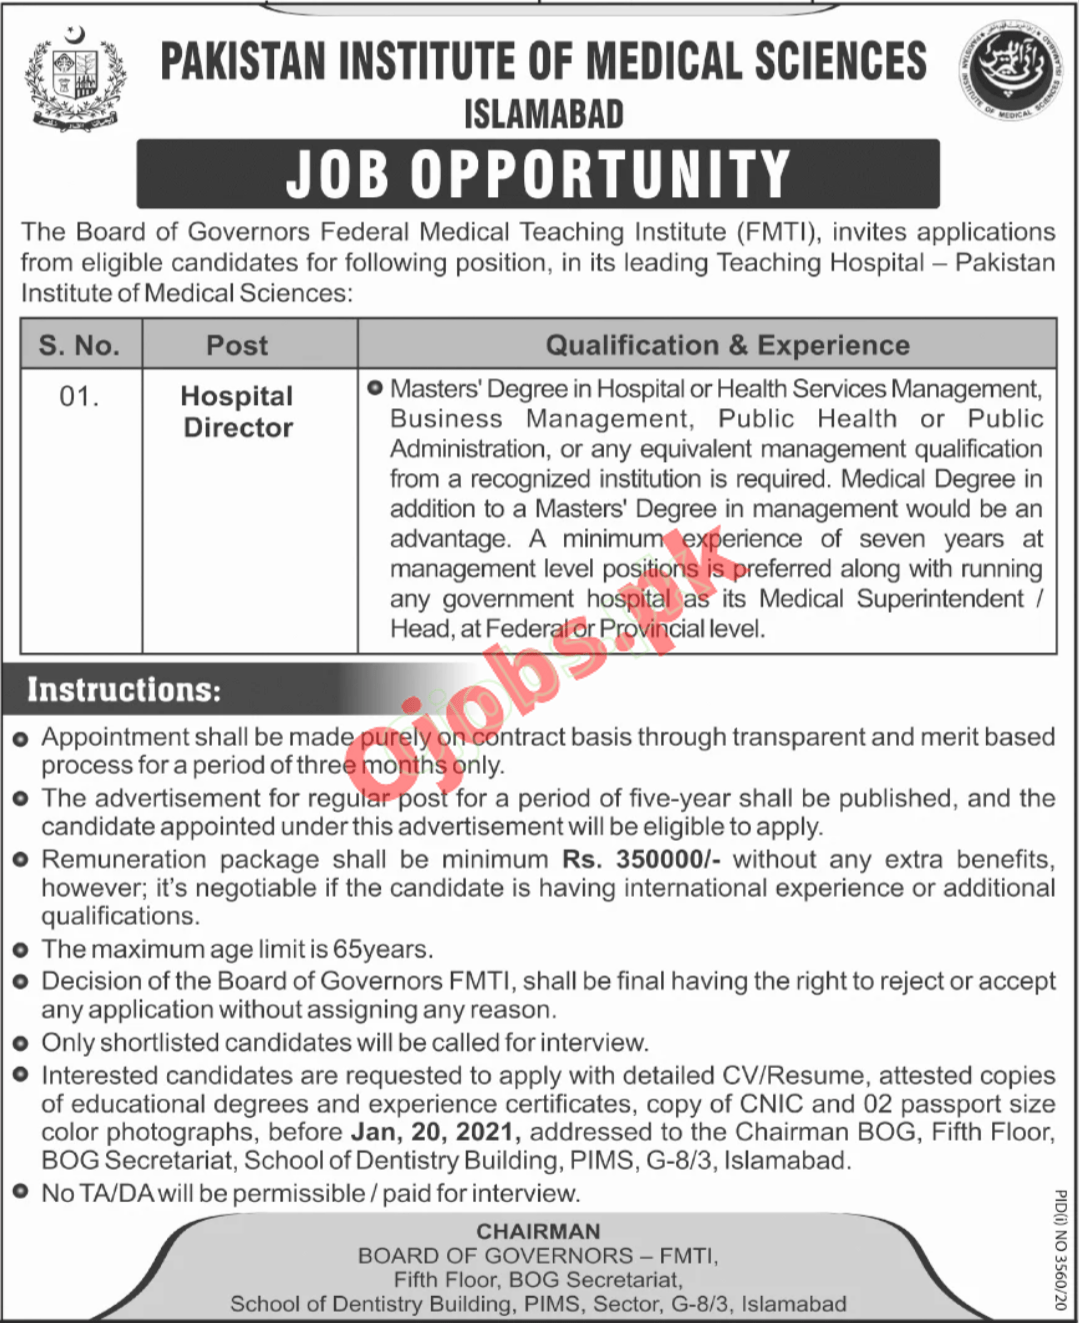 Pakistan Institute of Medical Sciences PIMS Jobs in Islamabad 2021